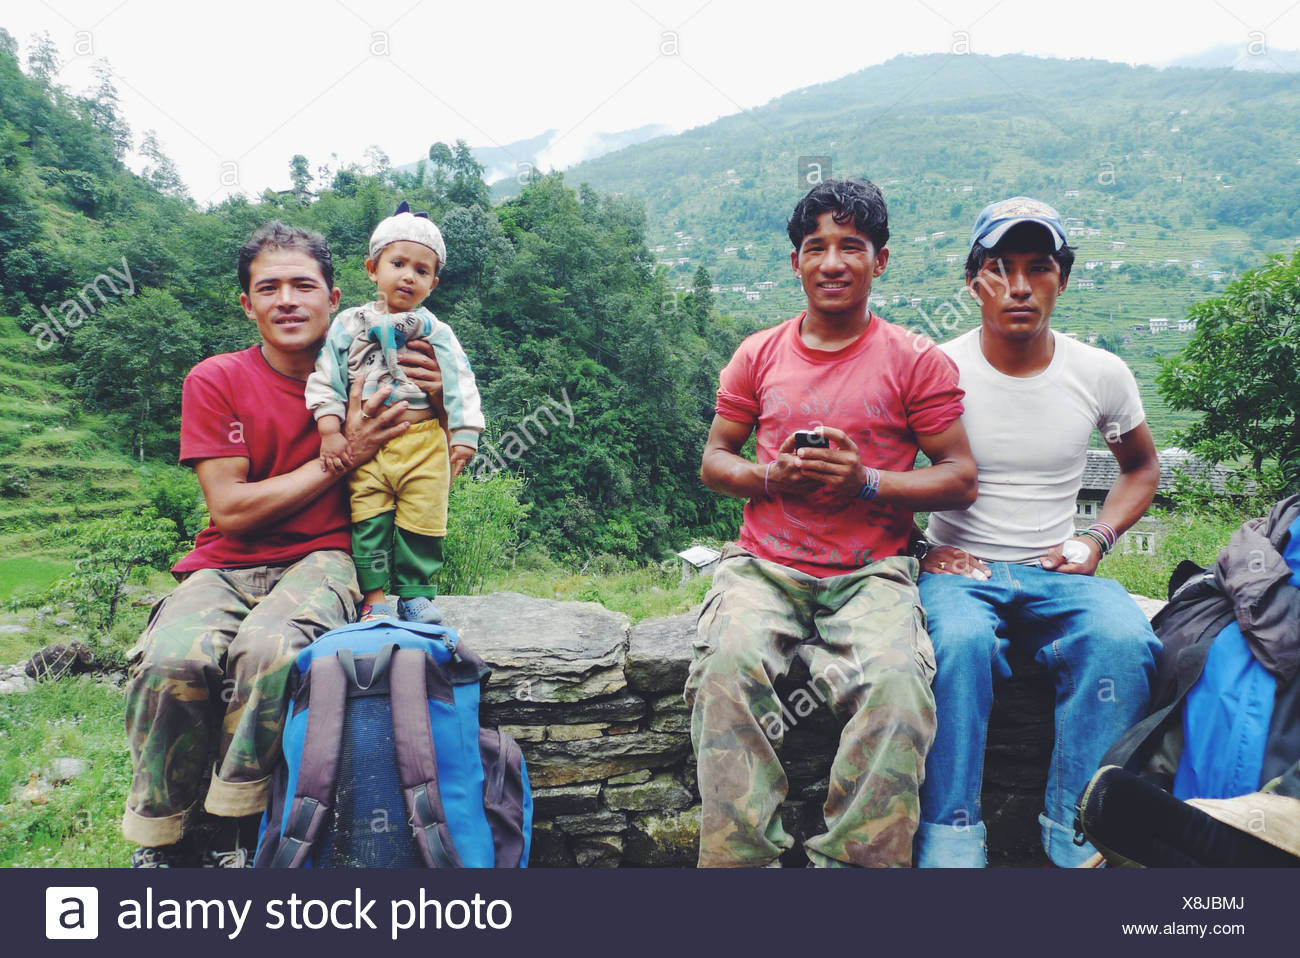 Three men sitting on a wall with a baby boy, Nepal - Stock Image